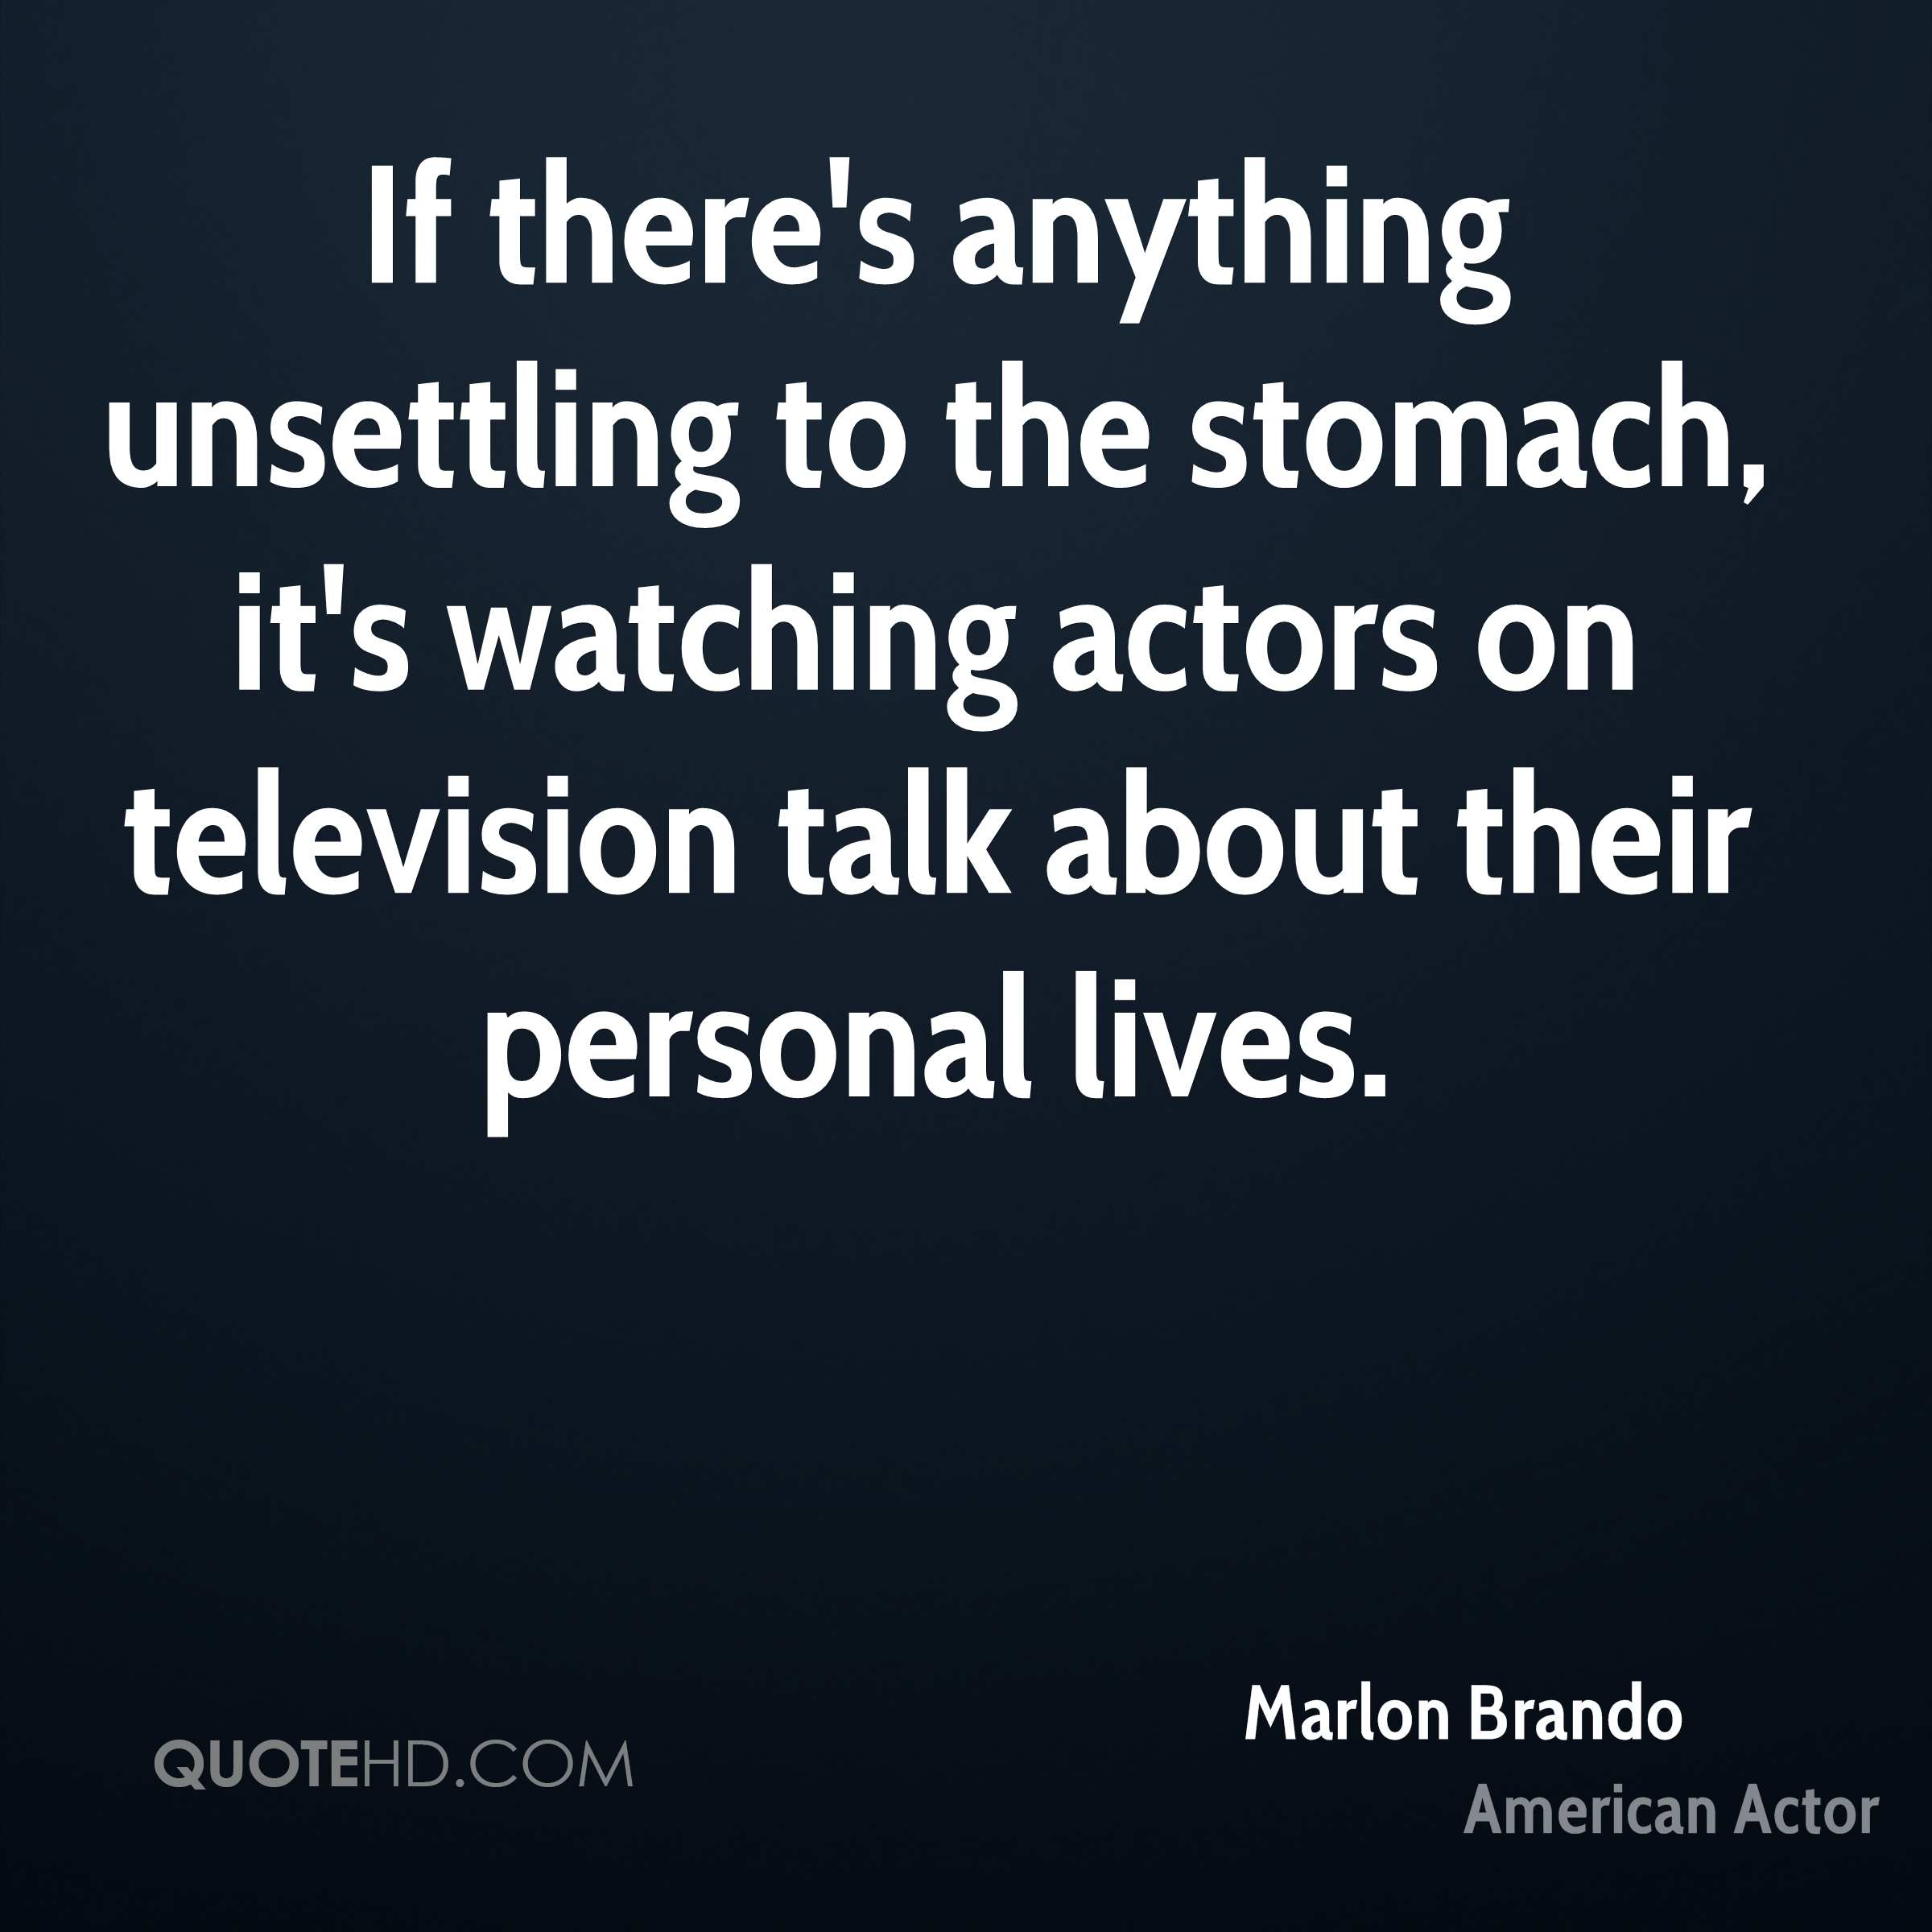 If there's anything unsettling to the stomach, it's watching actors on television talk about their personal lives.